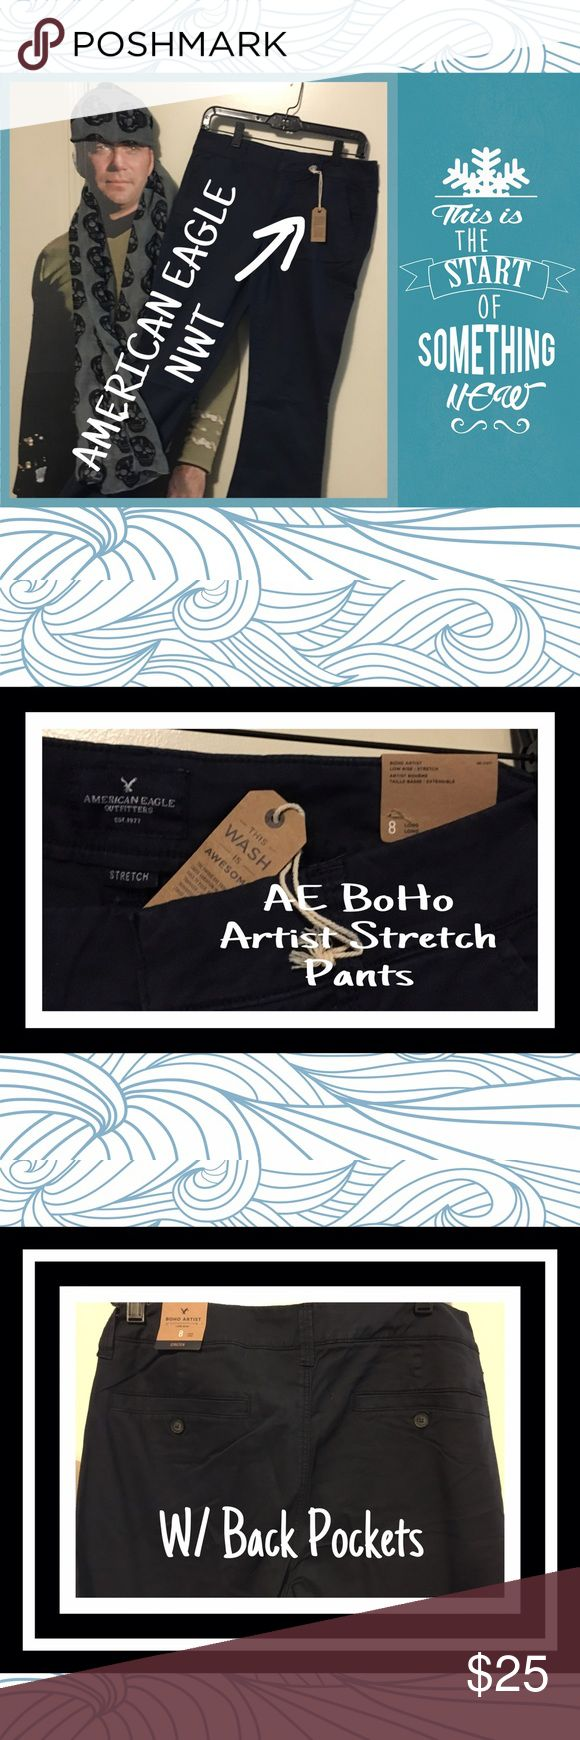 🖤🖤 NWT 🖤🖤 AEO Navy Blue BoHo Artist Stretch 🖤🖤 NWT 🖤🖤 AEO Navy Blue BoHo Artist Stretch Pants.  Great for work or PLAY!  Size 8 Long American Eagle Outfitters Pants Trousers